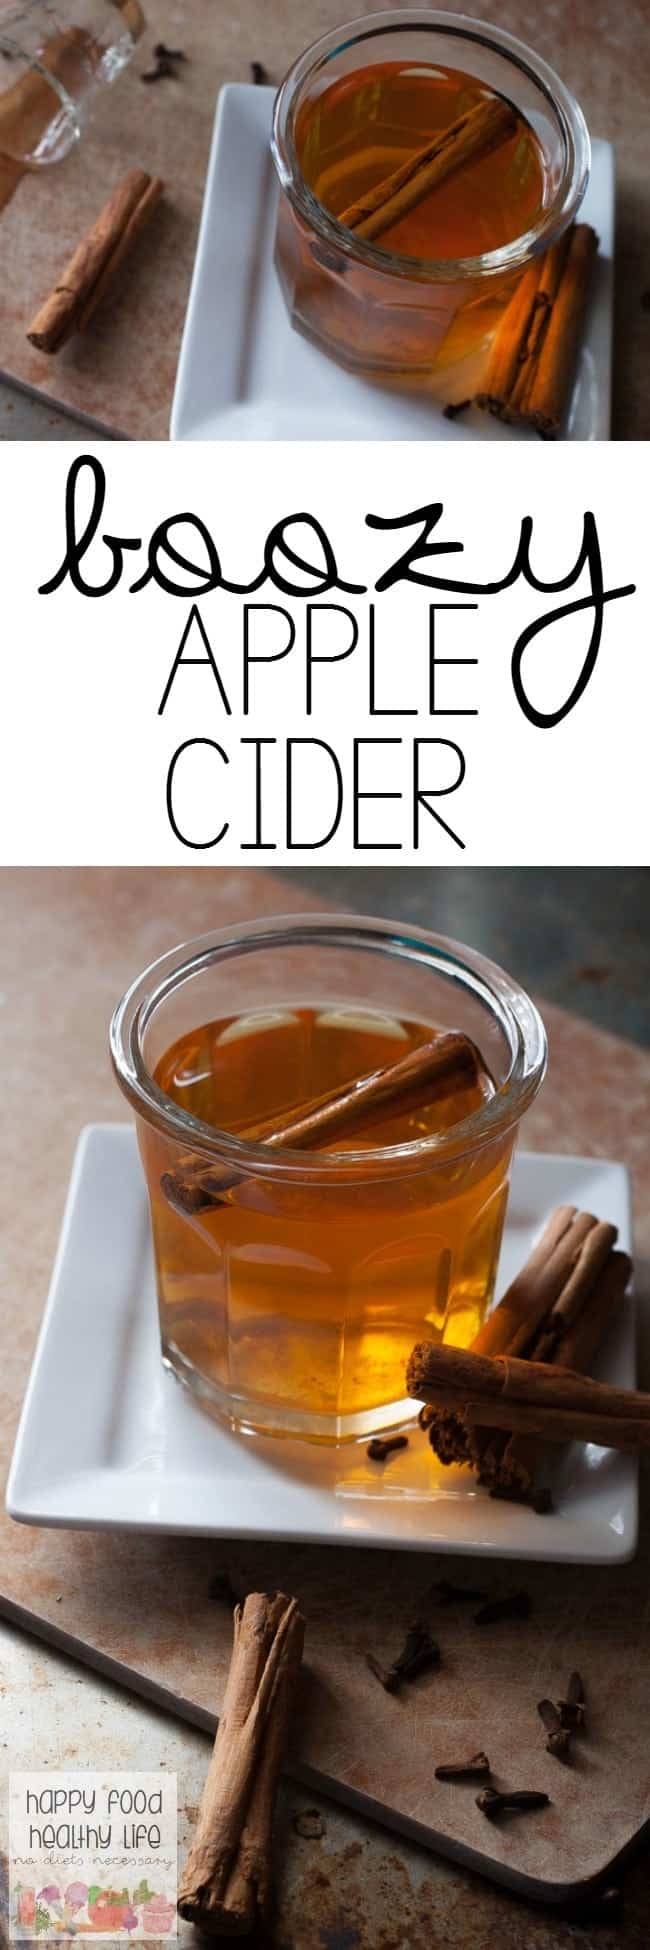 Boozy Apple Cider - the best hot drink you'll make this year.Only takes a few ingredients, 15 minutes, and can even be customized for kids as a non-alcoholic beverage!